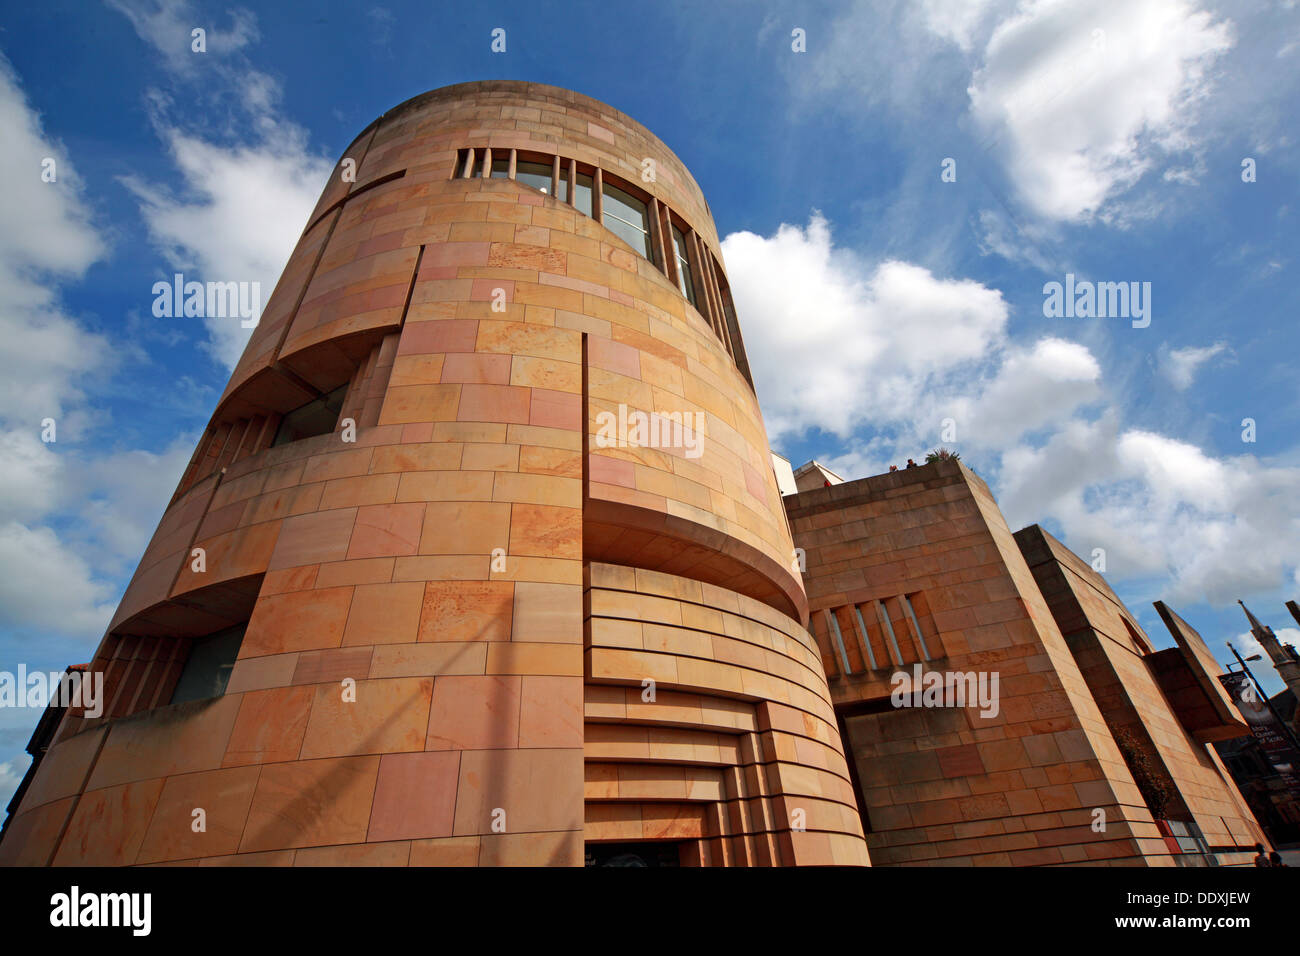 National Museum of Scotland new exterior with blue summer sky, Chambers St Edinburgh city, Scotland UK EH1 1JF - Stock Image